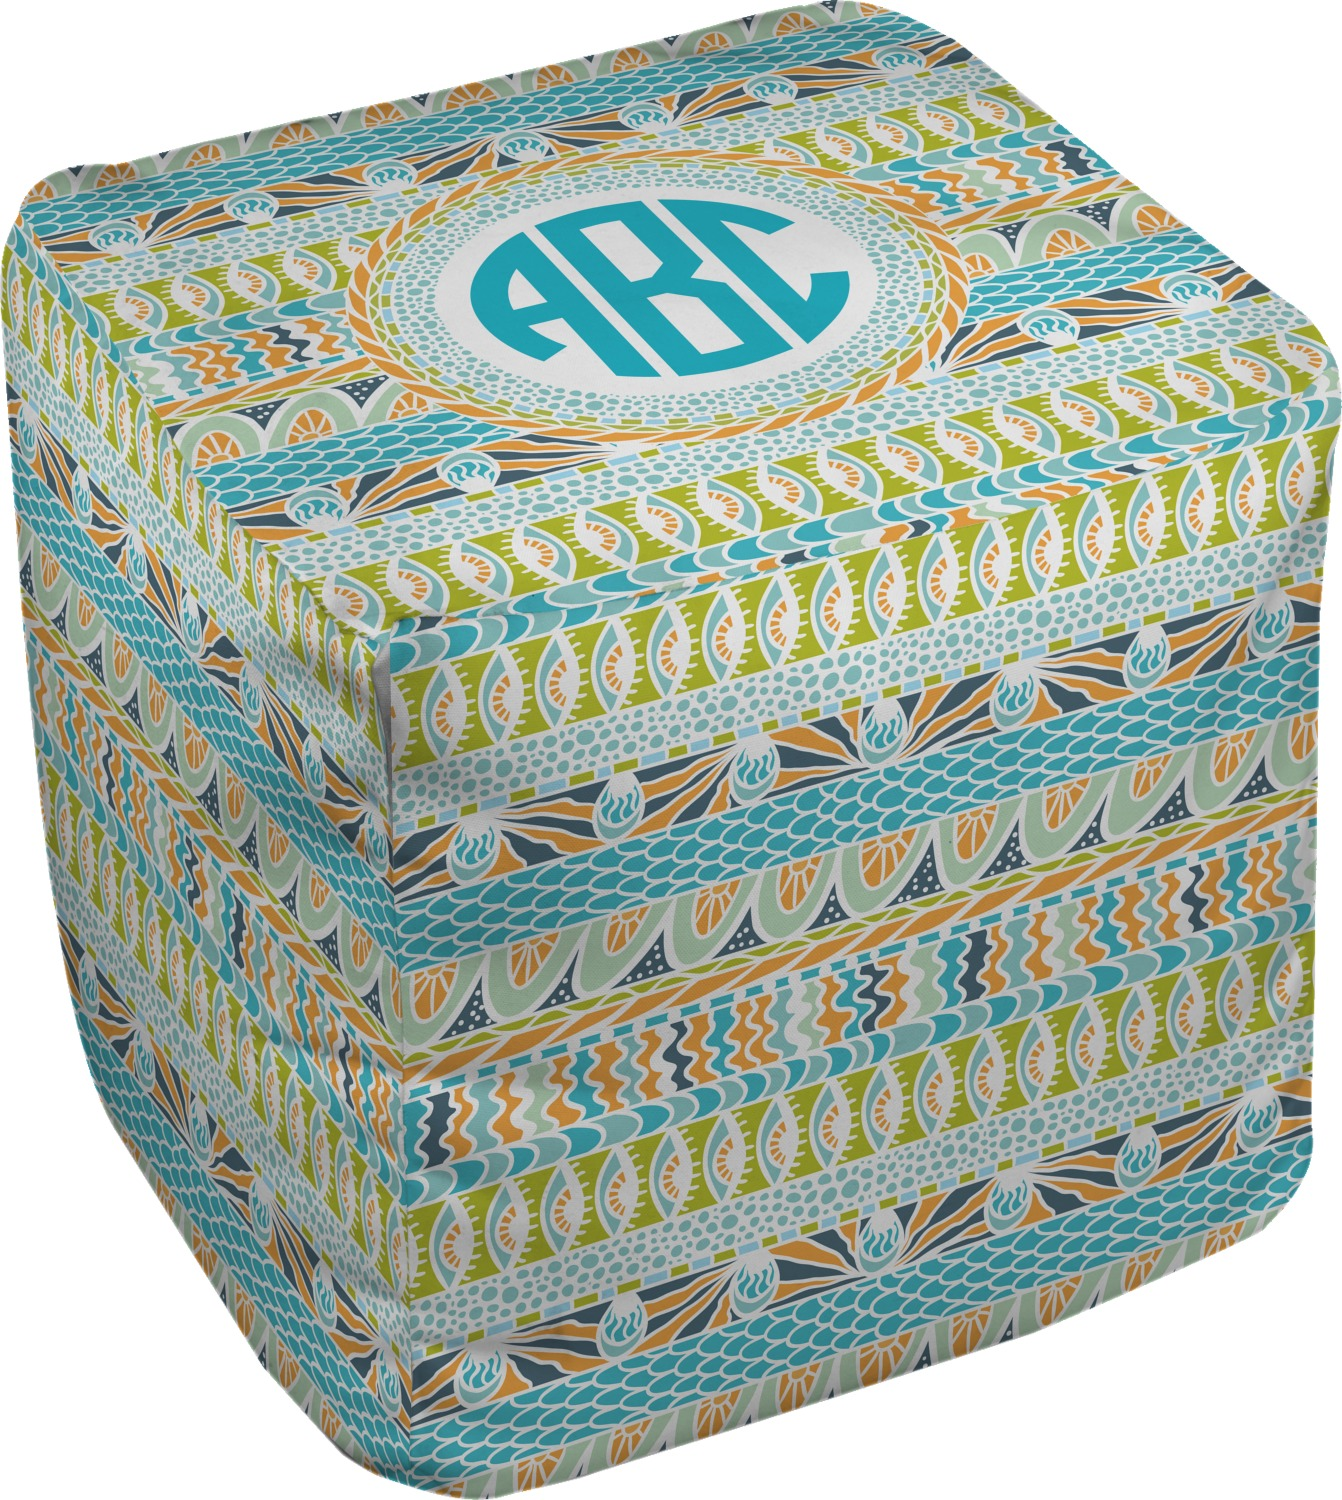 Abstract Teal Stripes Cube Pouf Ottoman 18